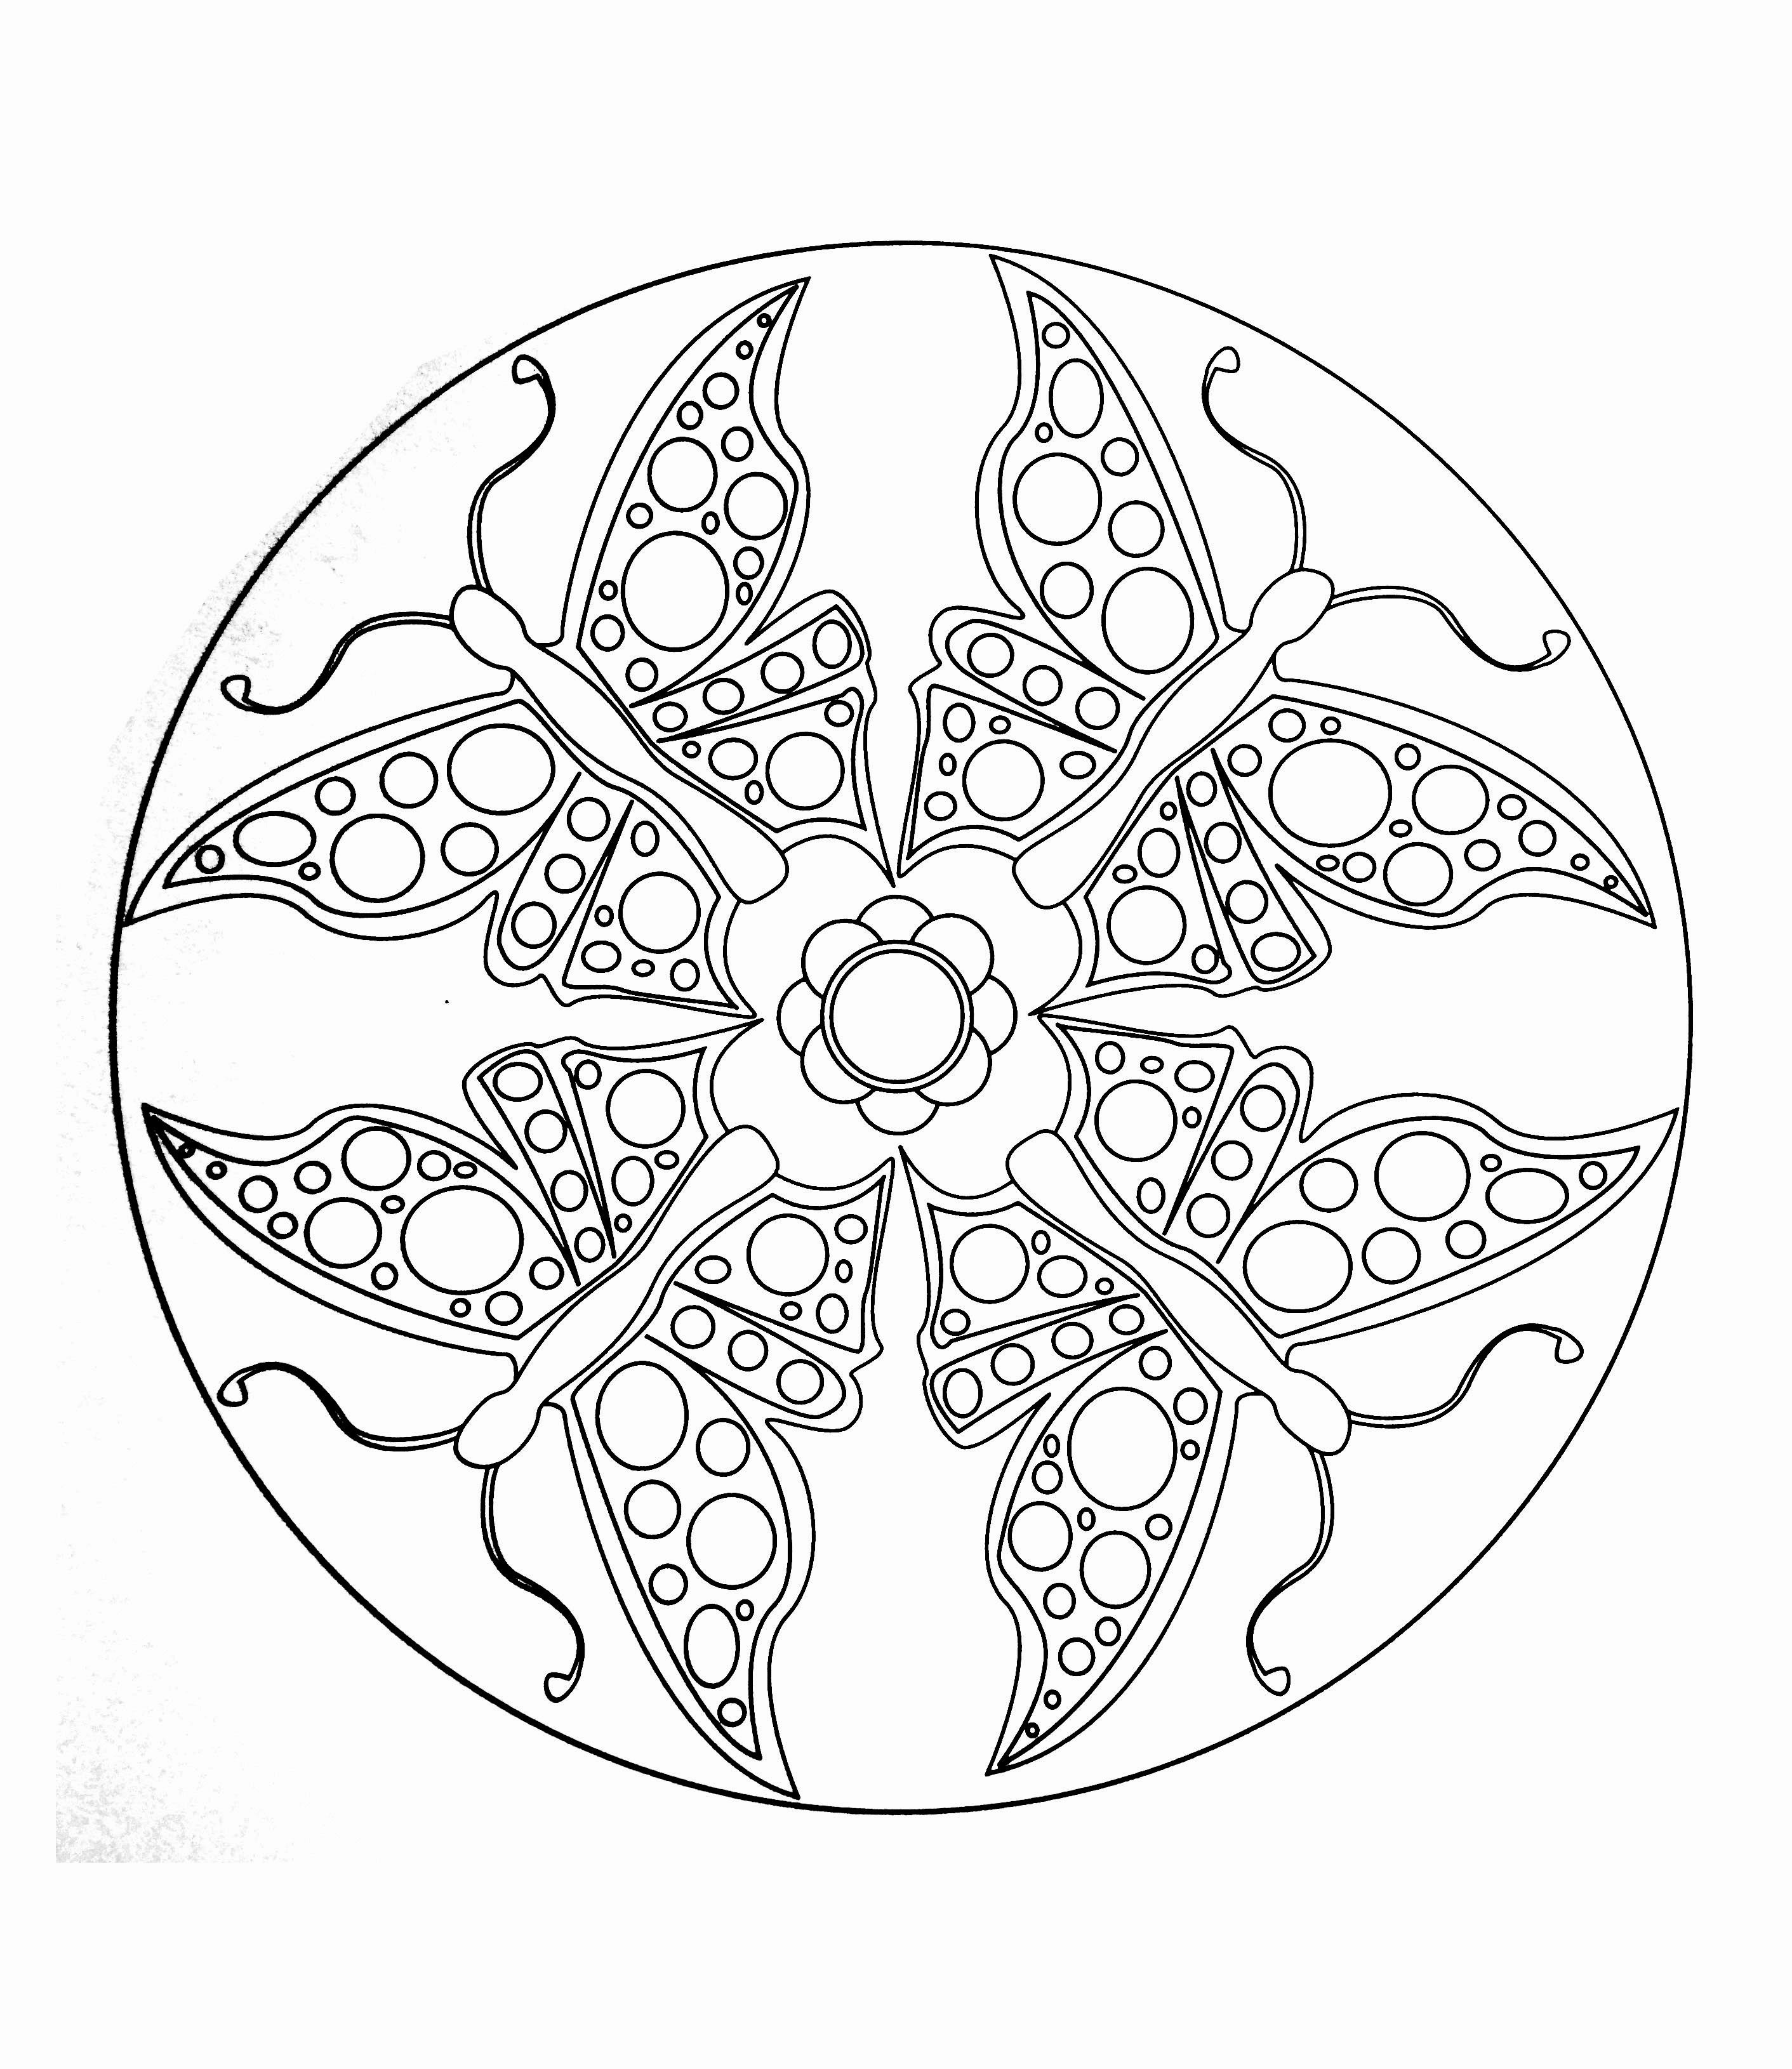 mandala colouring pages for kids animal mandala coloring pages best coloring pages for kids colouring mandala pages kids for